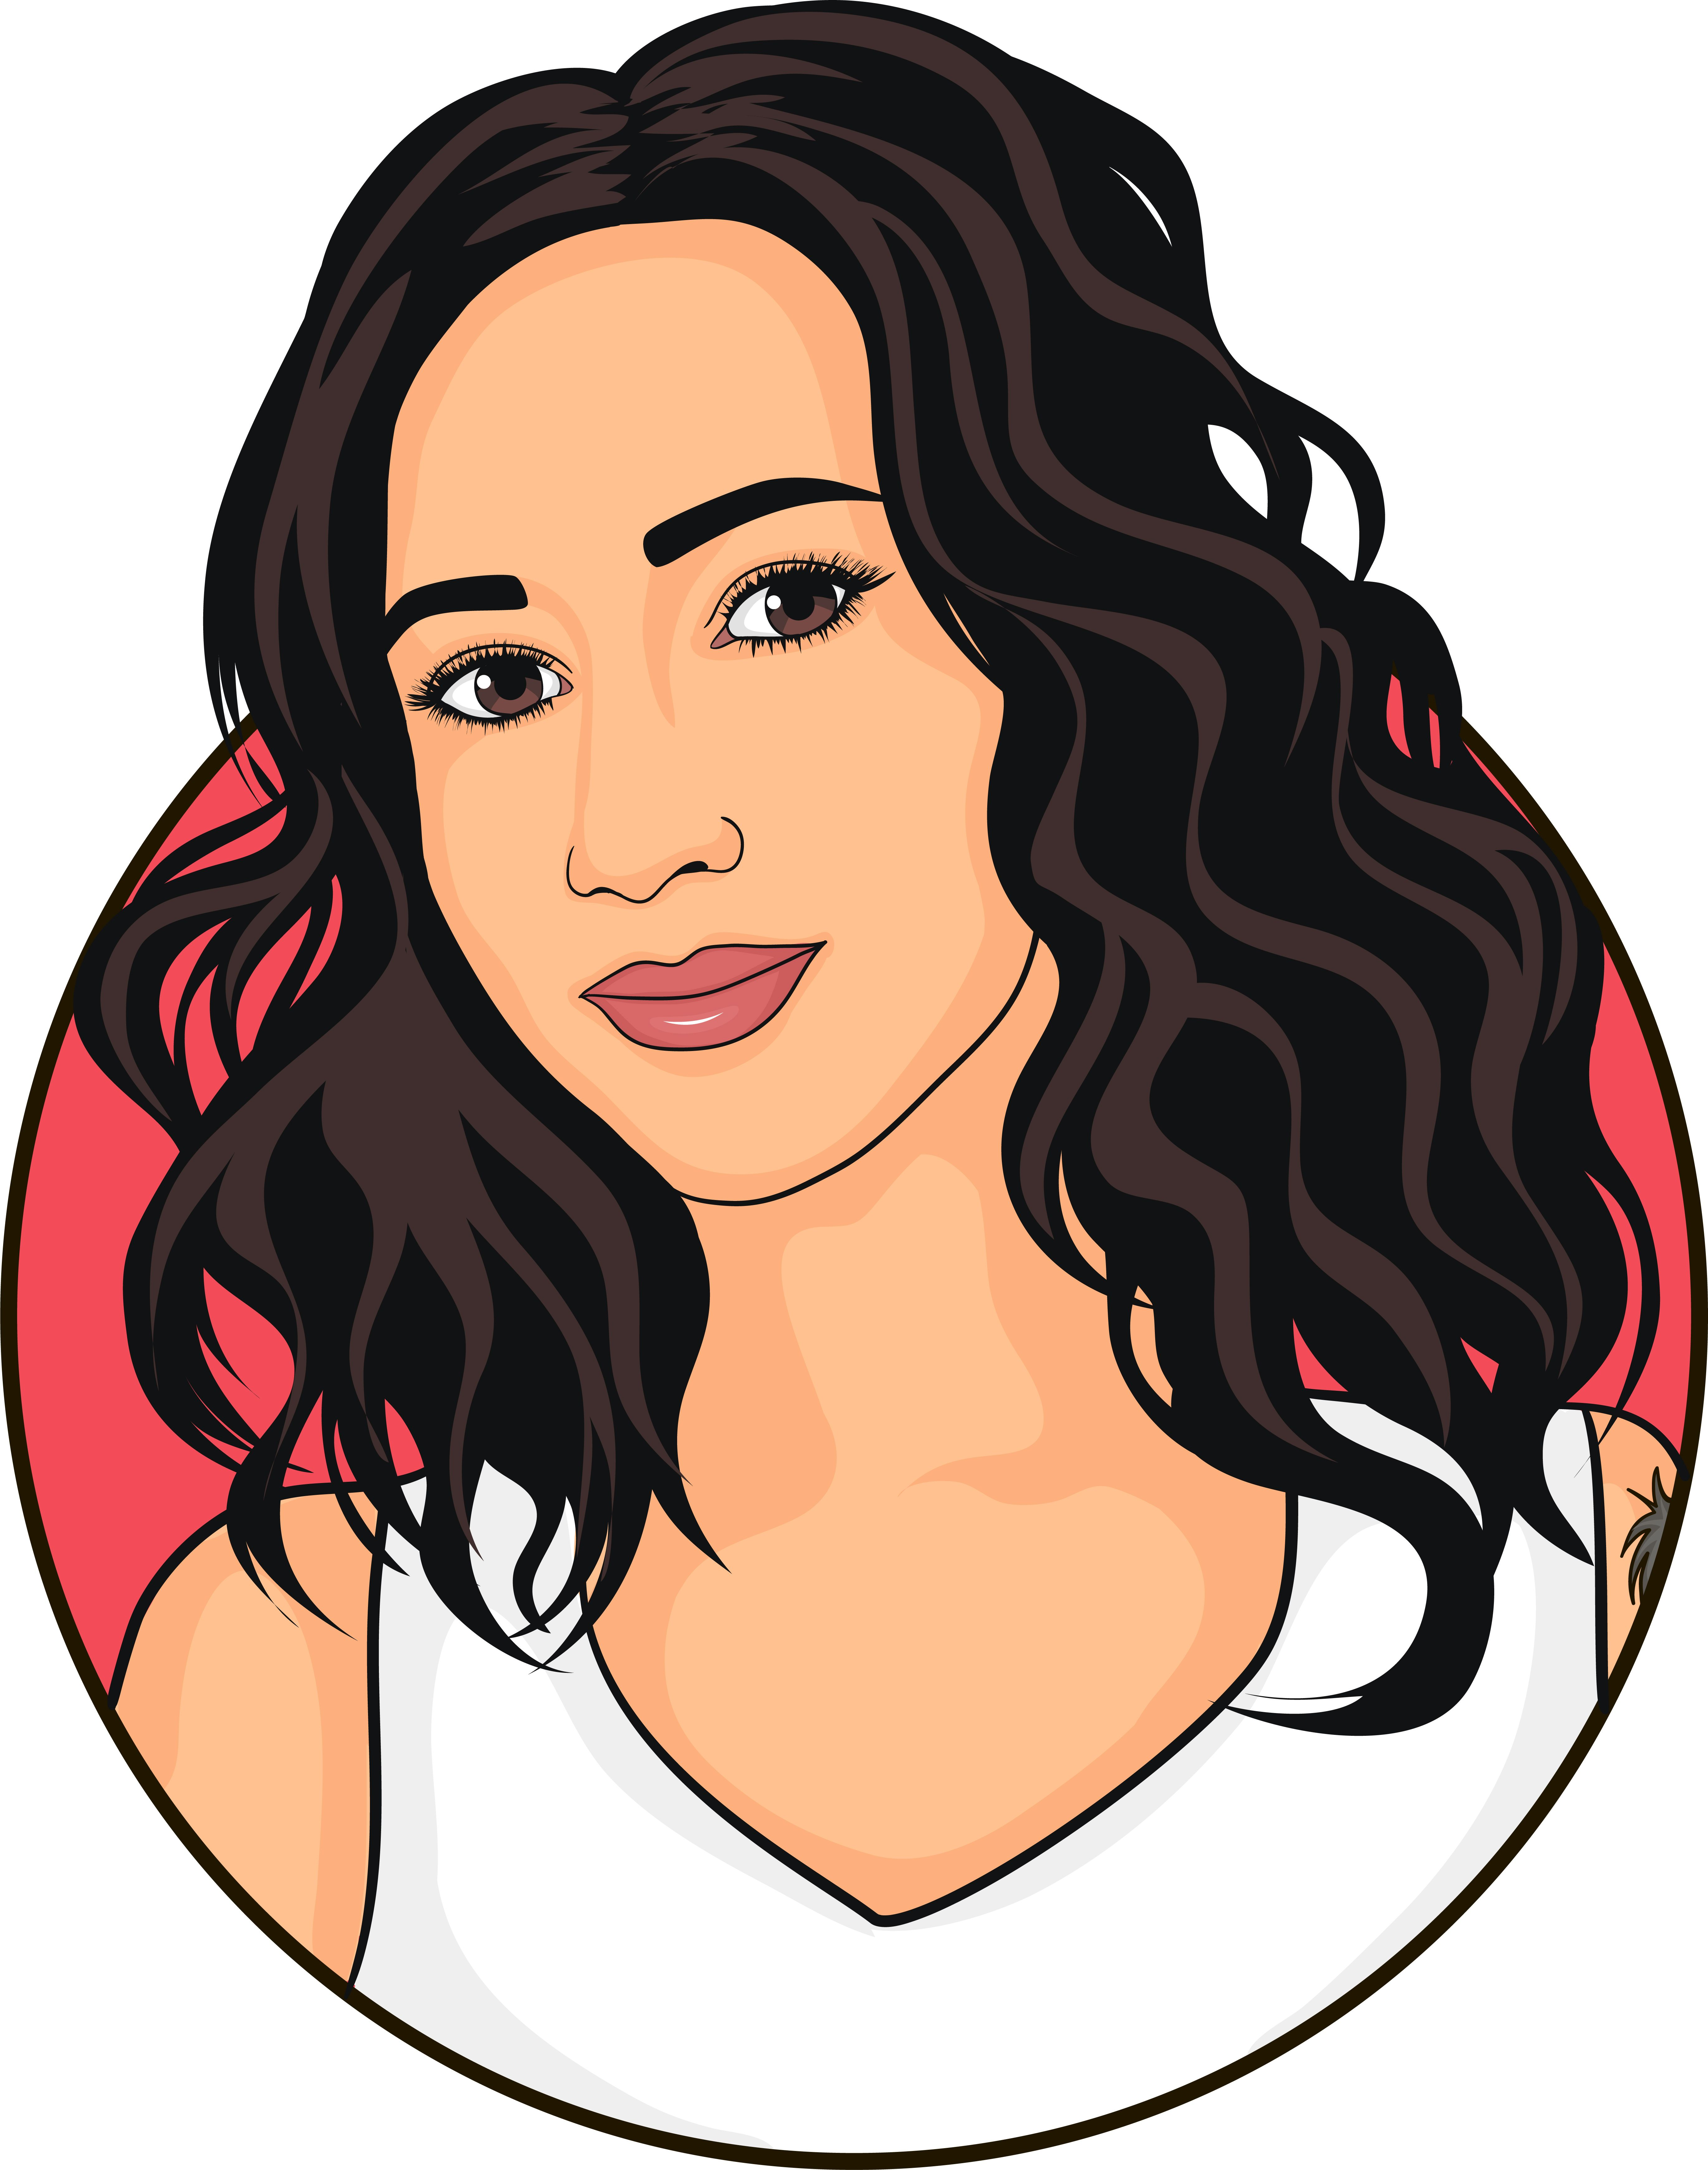 Pin By Alicia On Imagenes Dibujos Digital Portrait Digital Portrait Illustration Vector Portrait Illustration